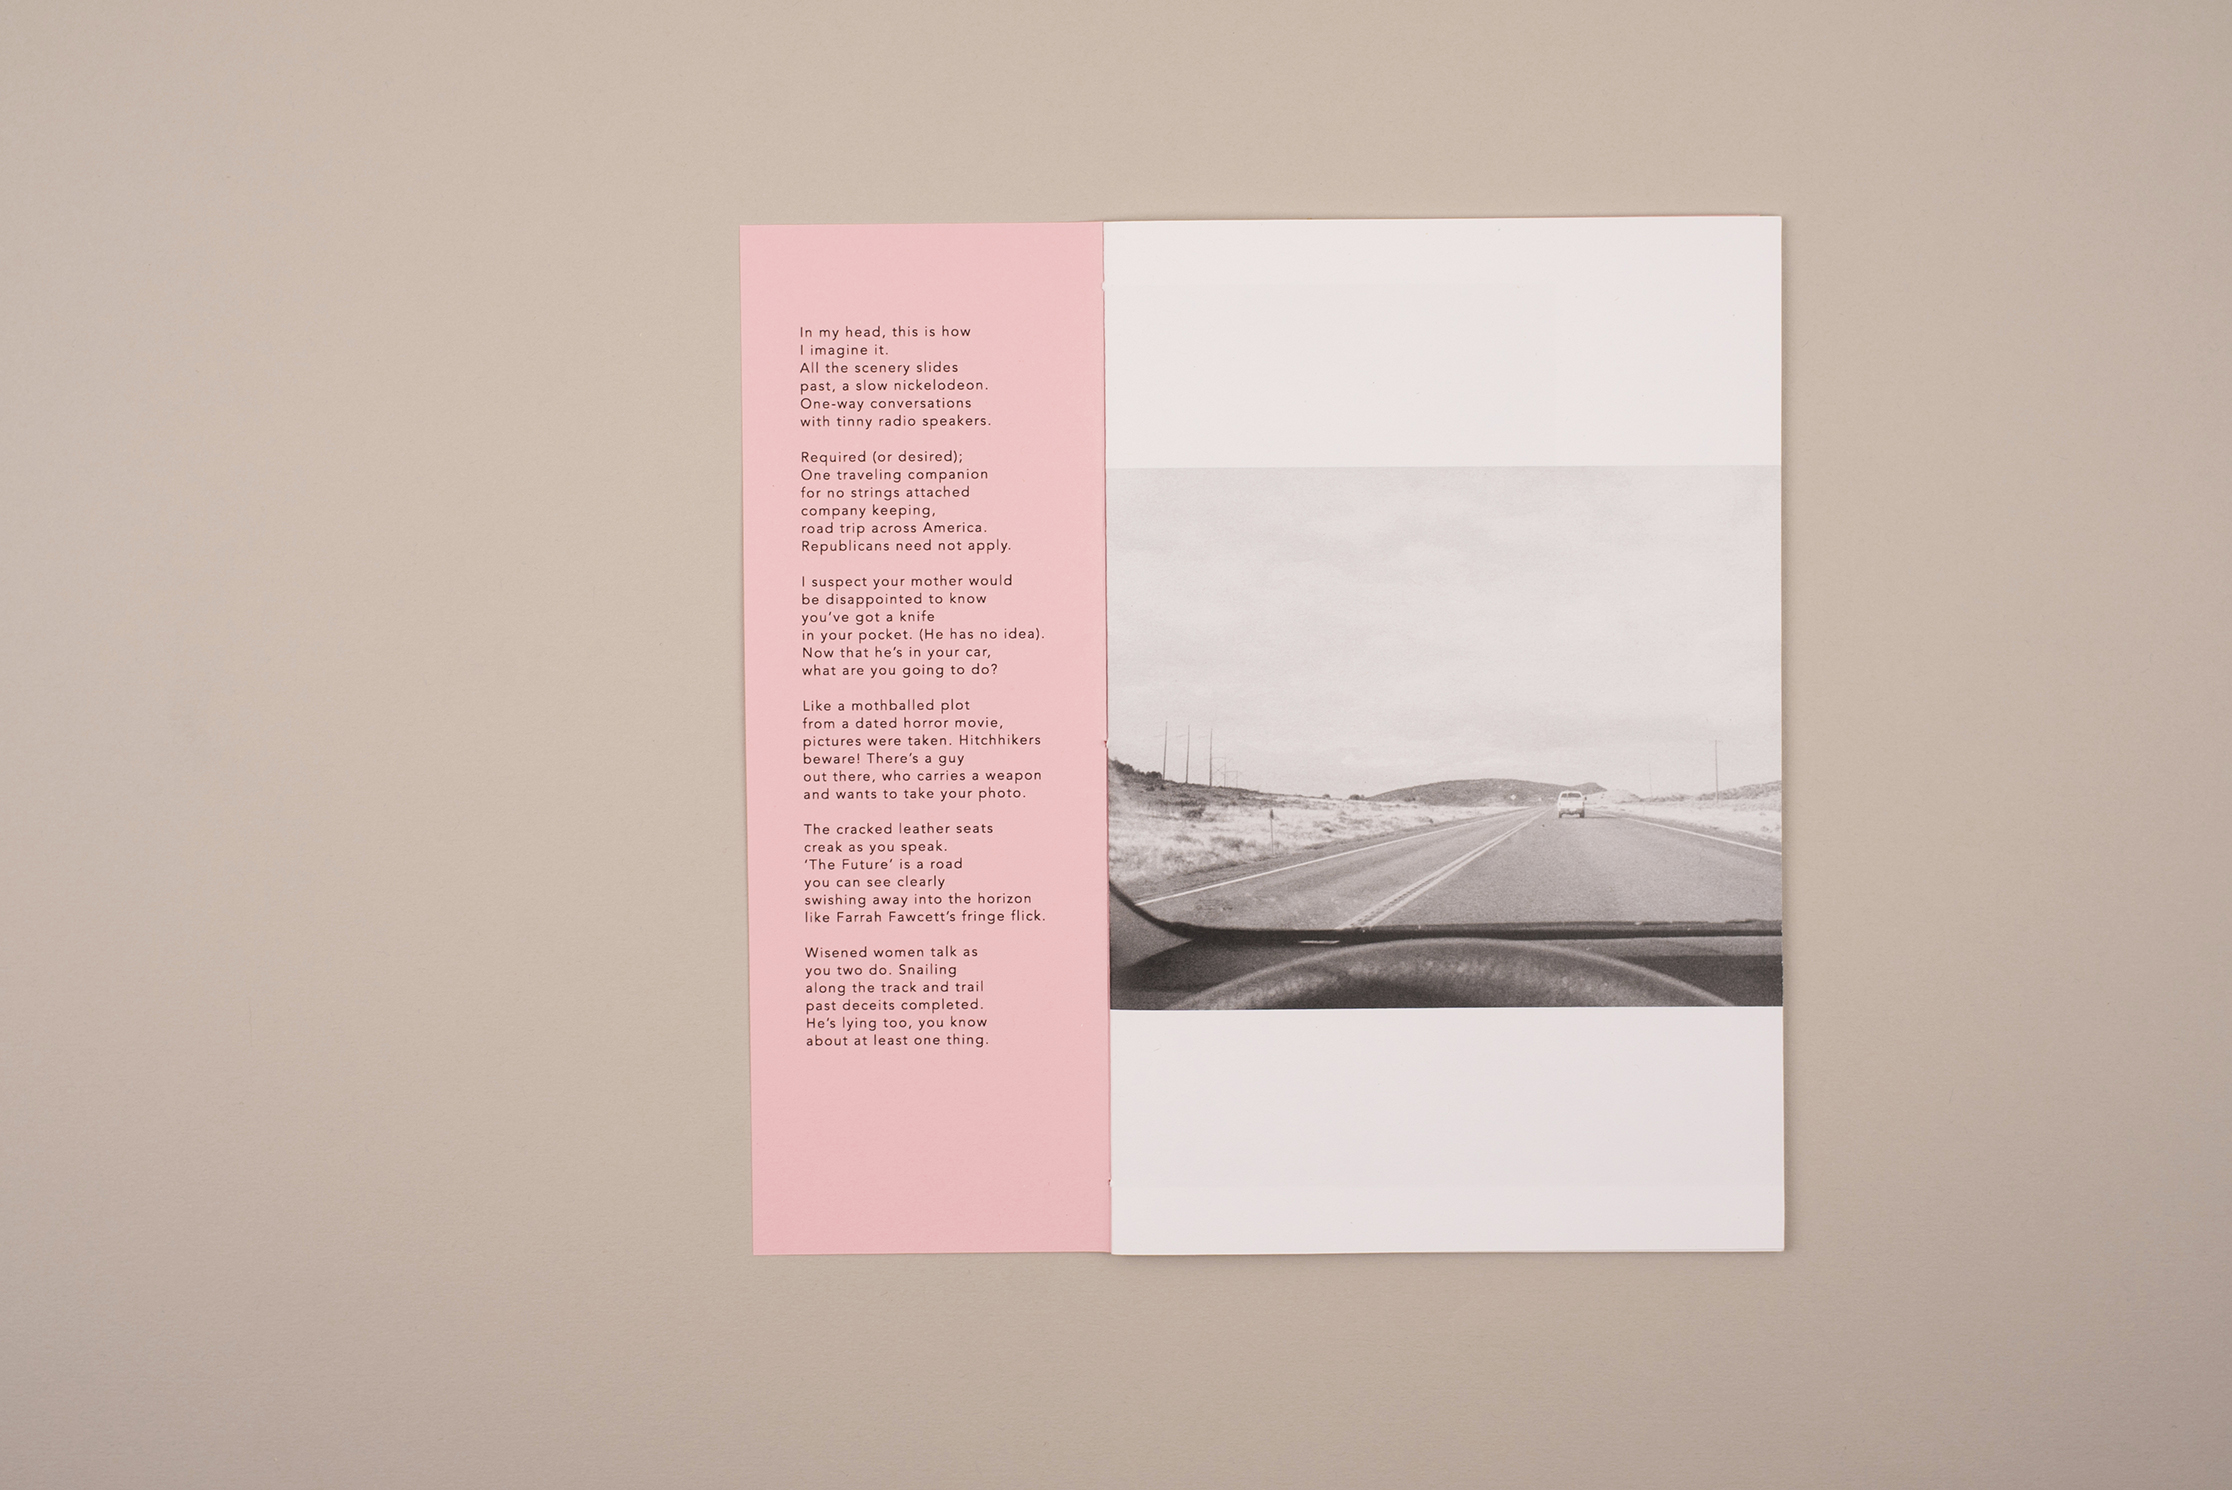 Space Cowboy zine. Photography by Jack Latham. Poem by Sofia Kathryn Smith. A zine about hitchhiking in America. Light Pink half sized cover, reverse side containing poem.